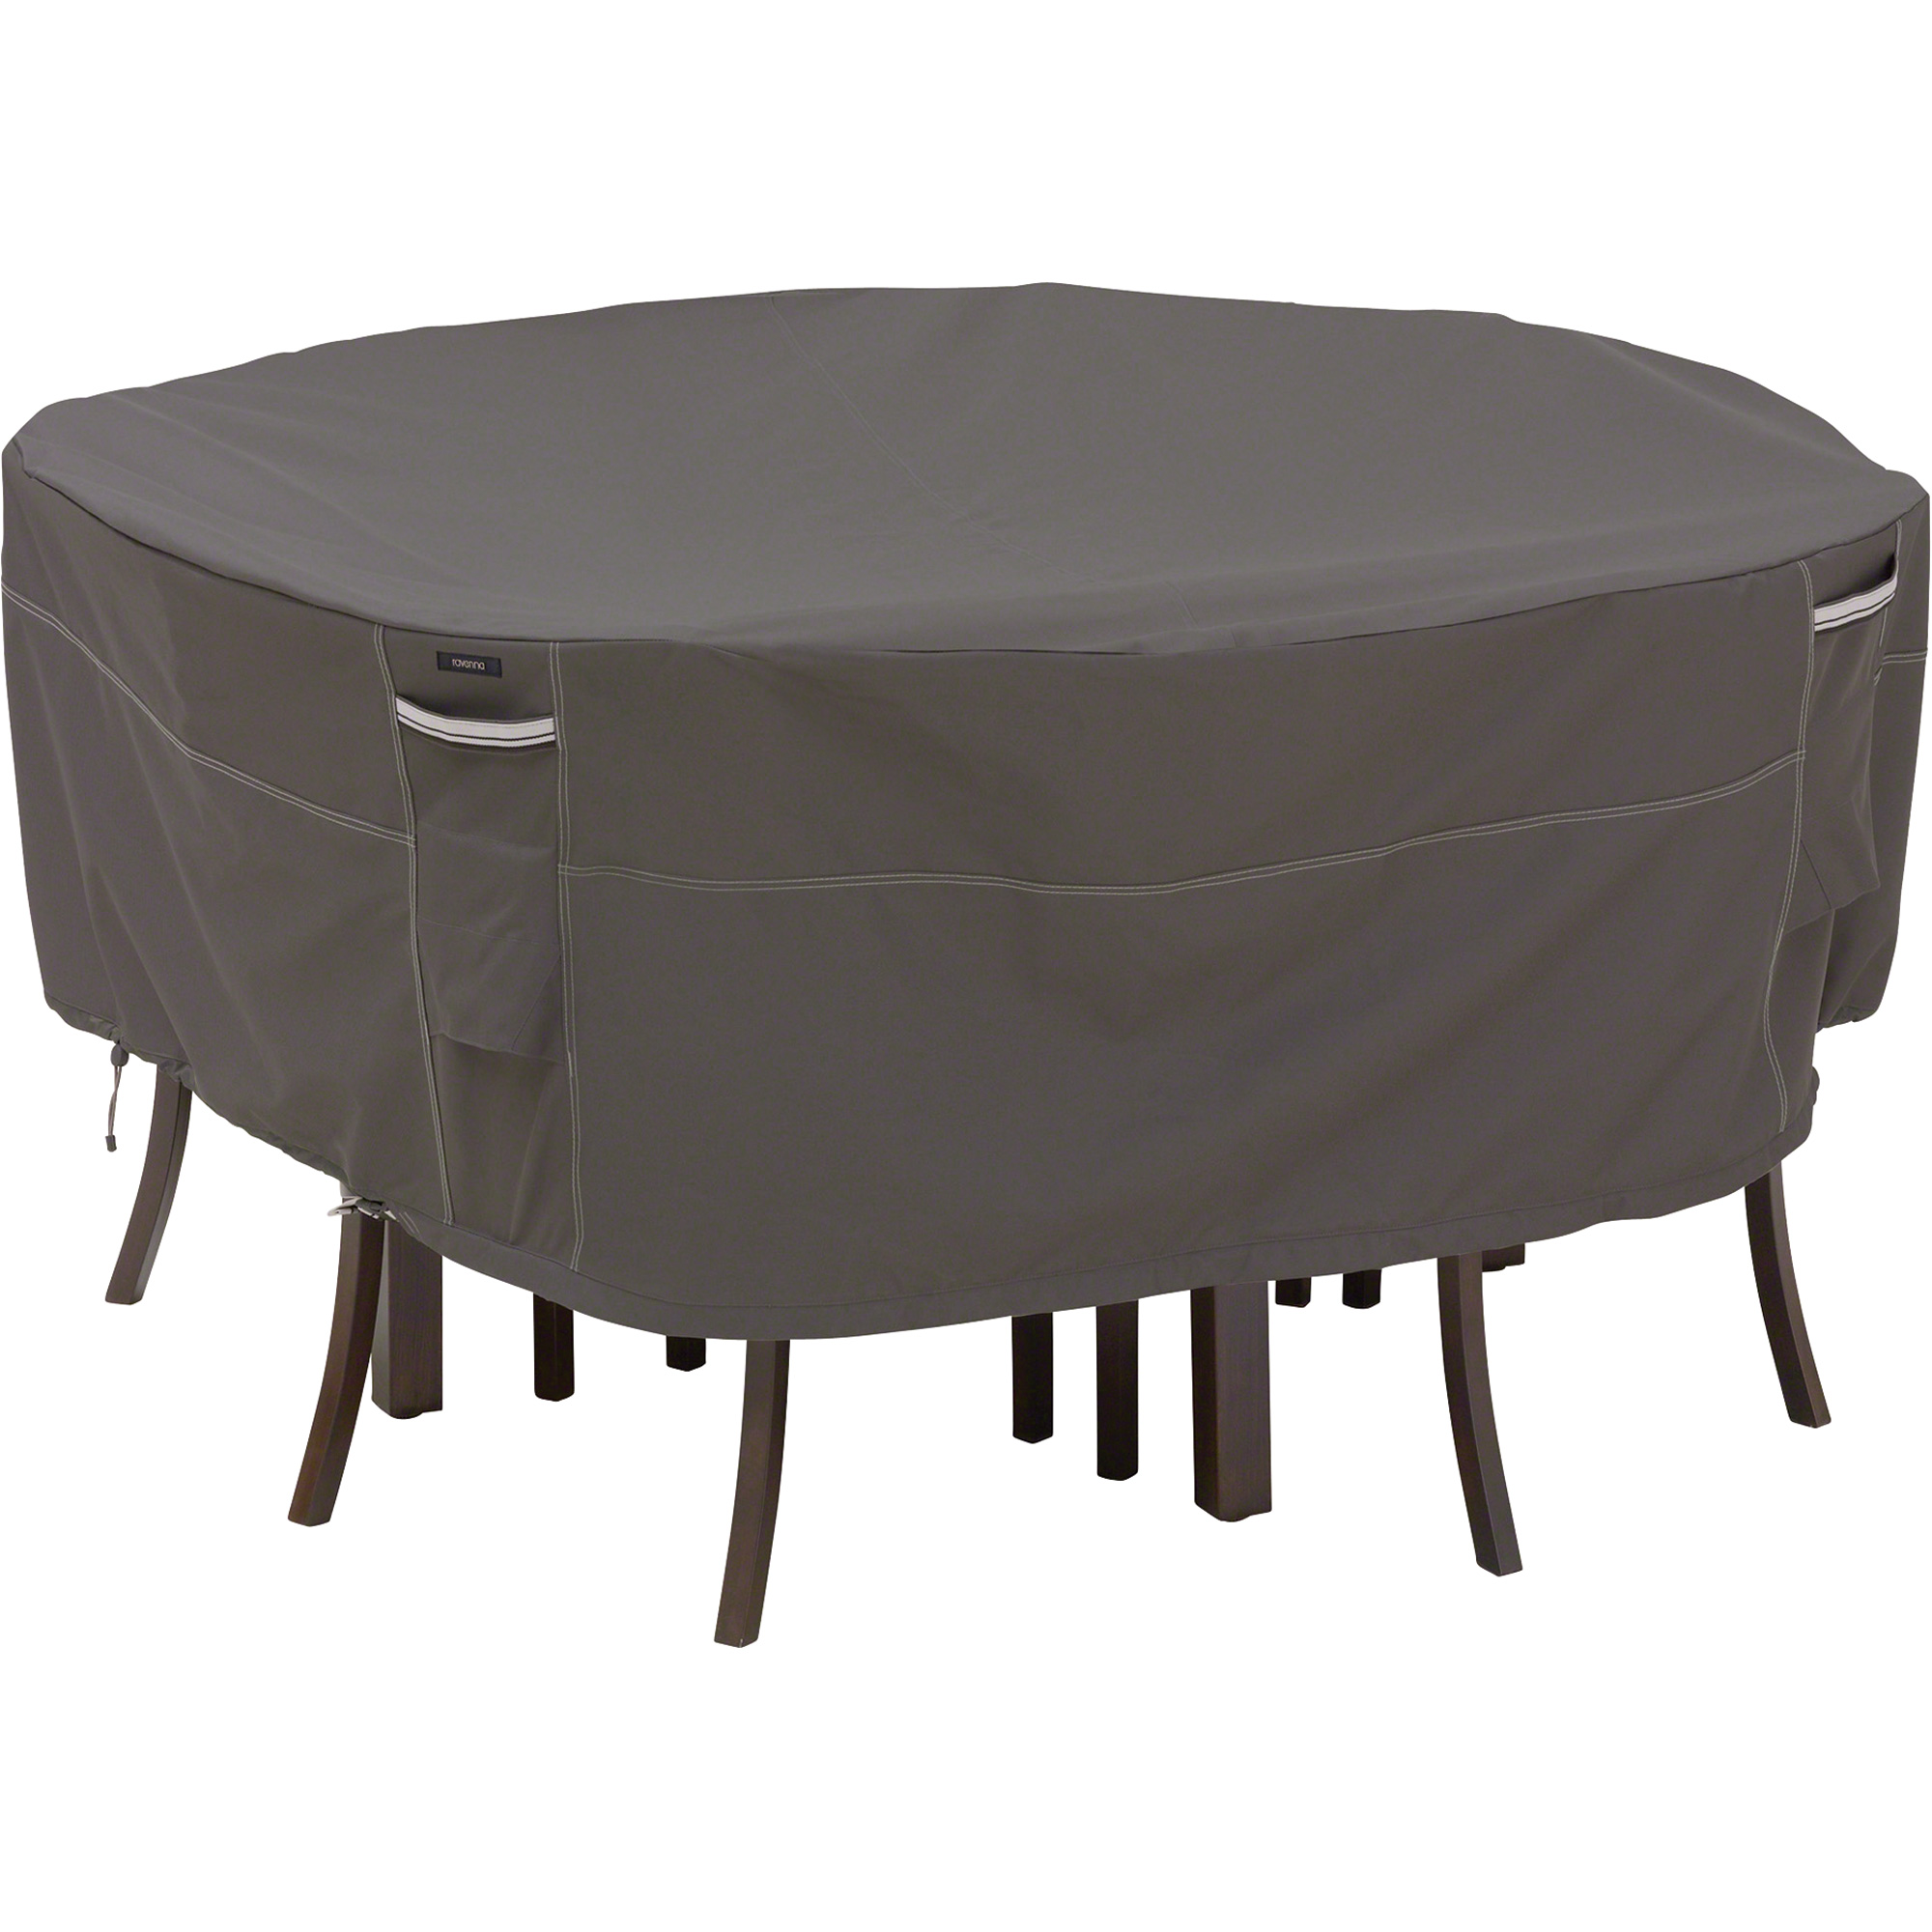 classic accessories ravenna taupe outdoor patio furniture cover round accent table covers chair large qvc pottery barn console dining sets concrete bedside triangle ikea short